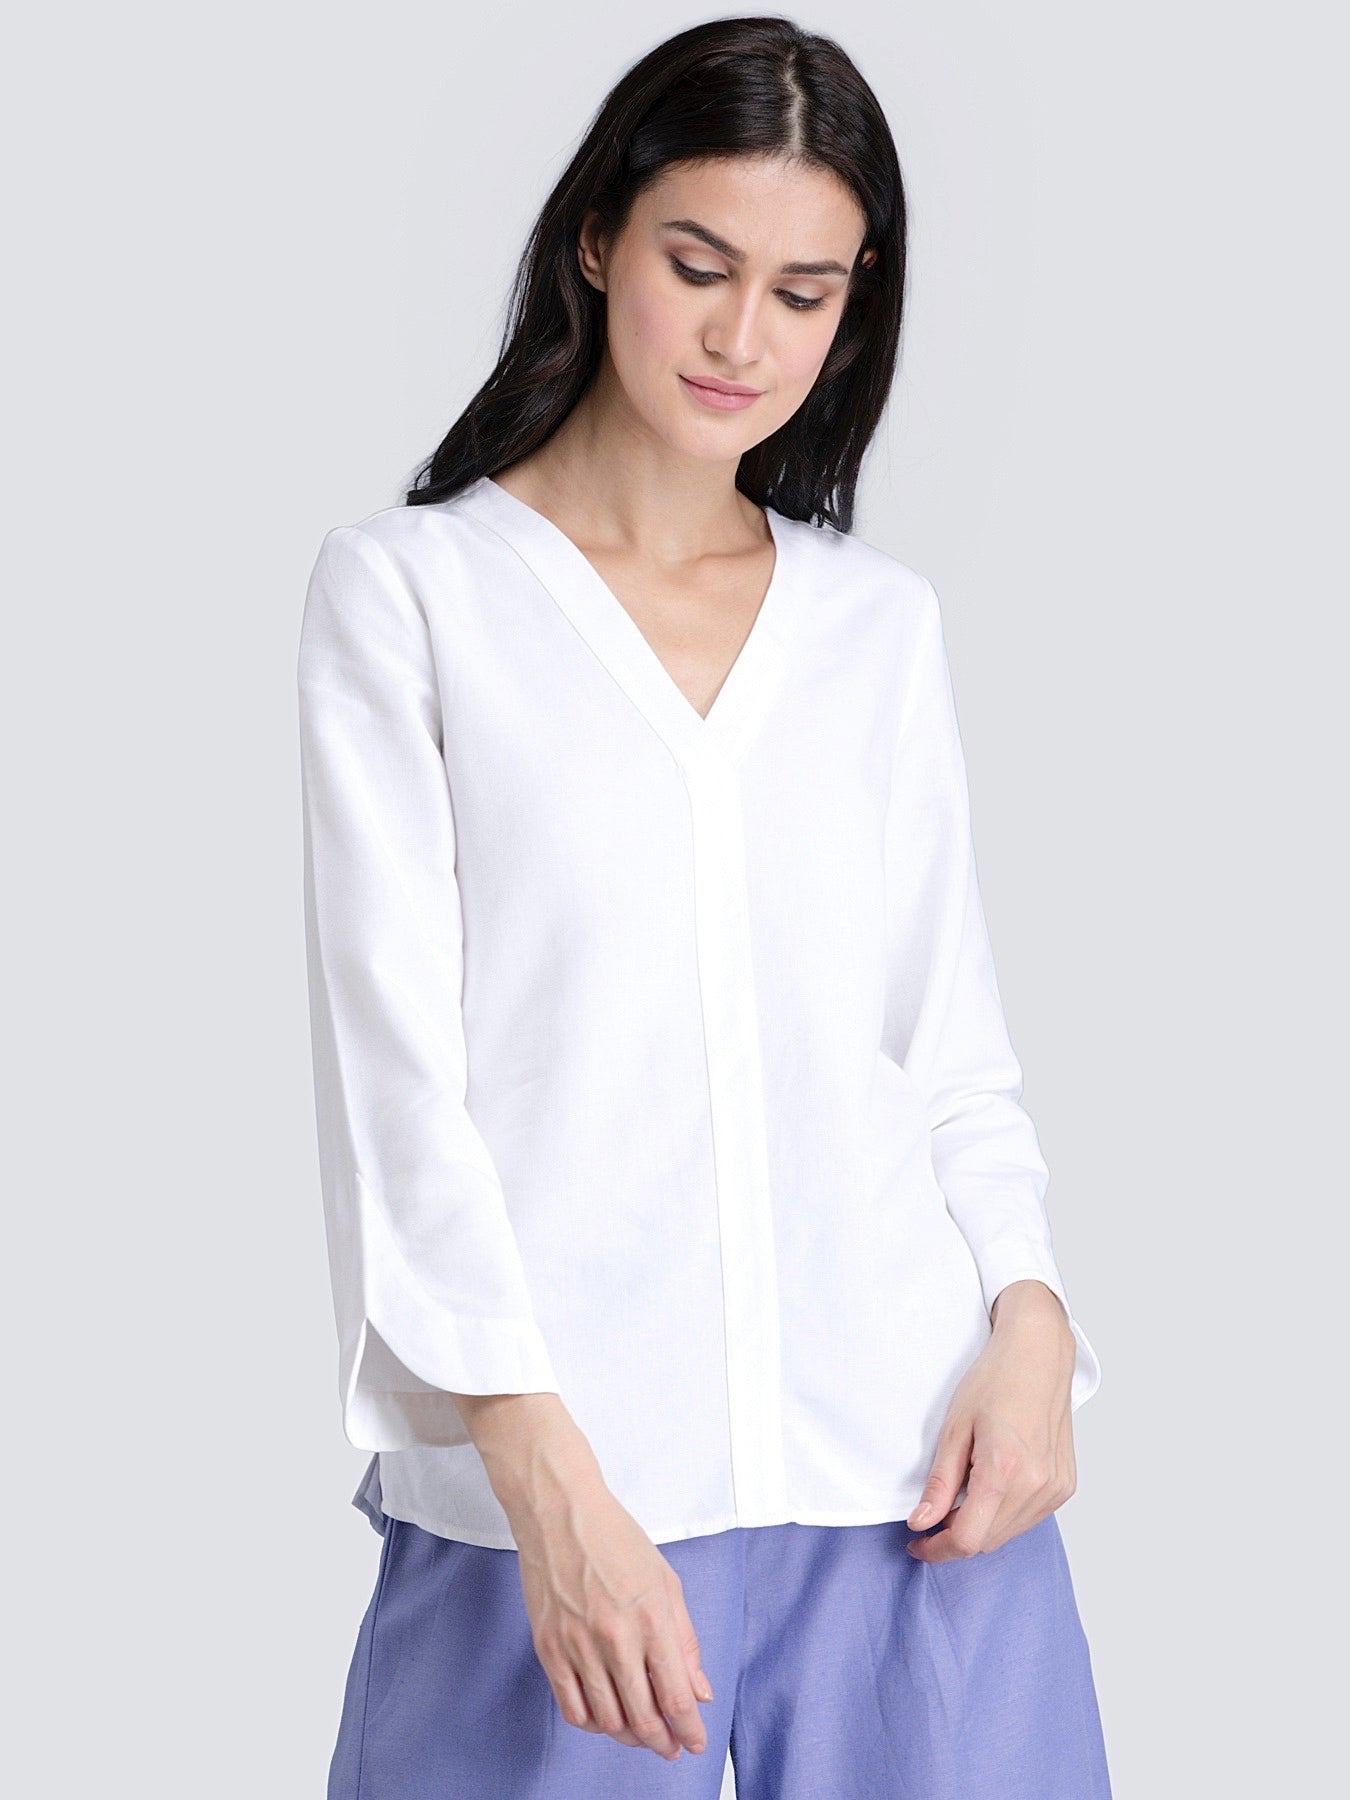 Cotton V Neck Top With Stylish Sleeves - White